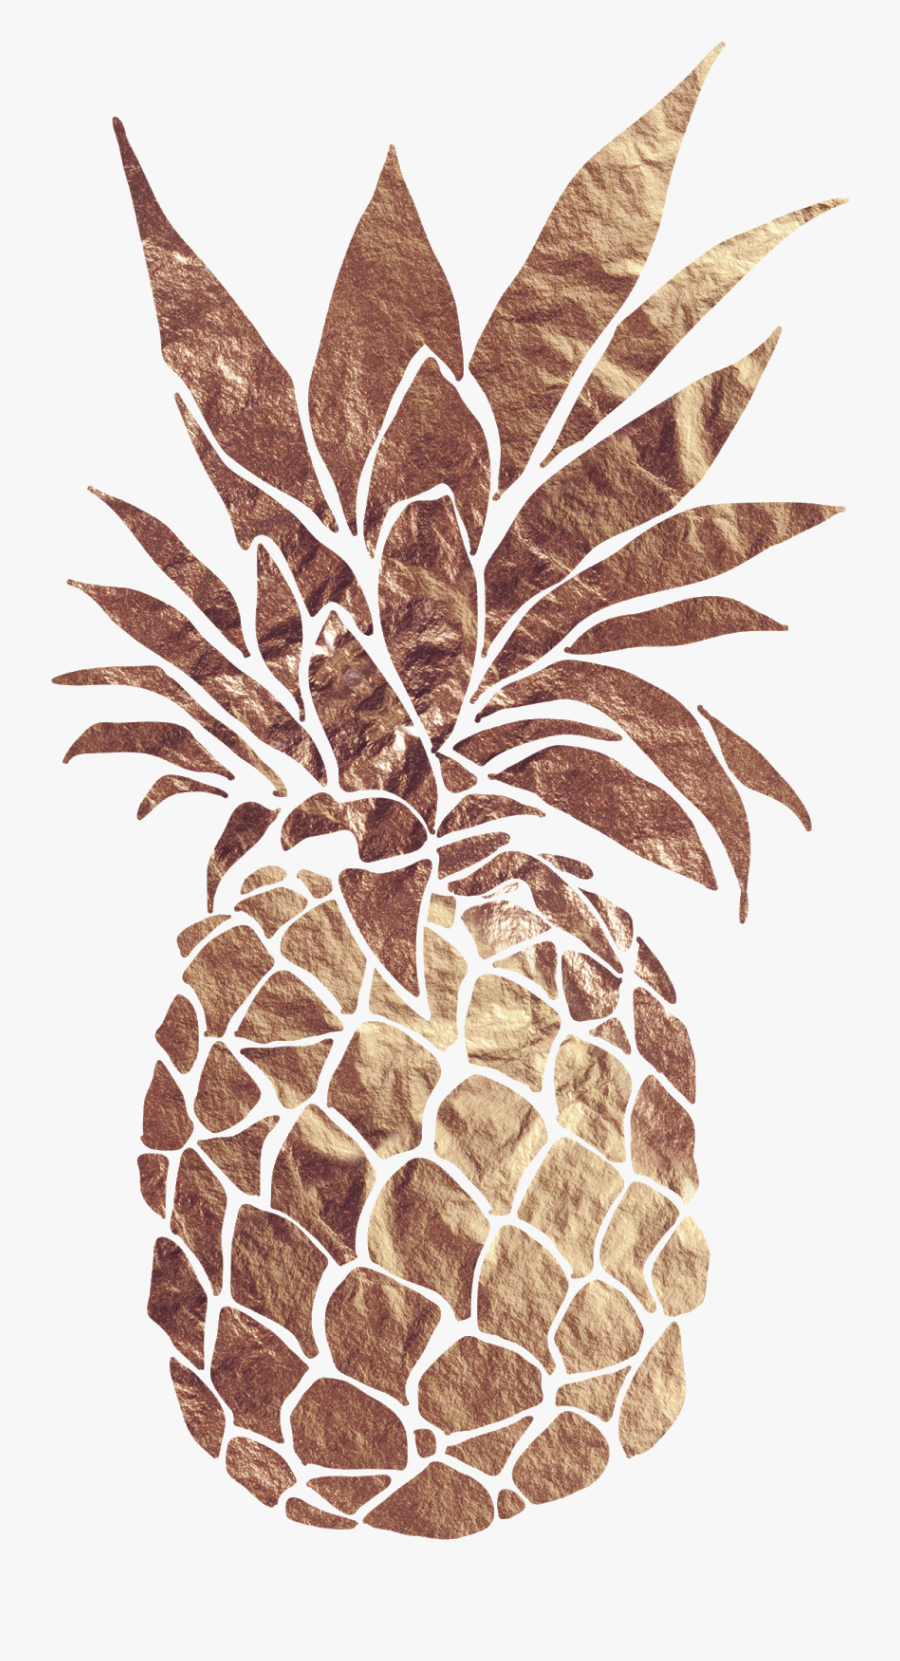 Pineapple Png Vector Clipart Image - Transparent Background Gold Pineapple Png, Transparent Clipart